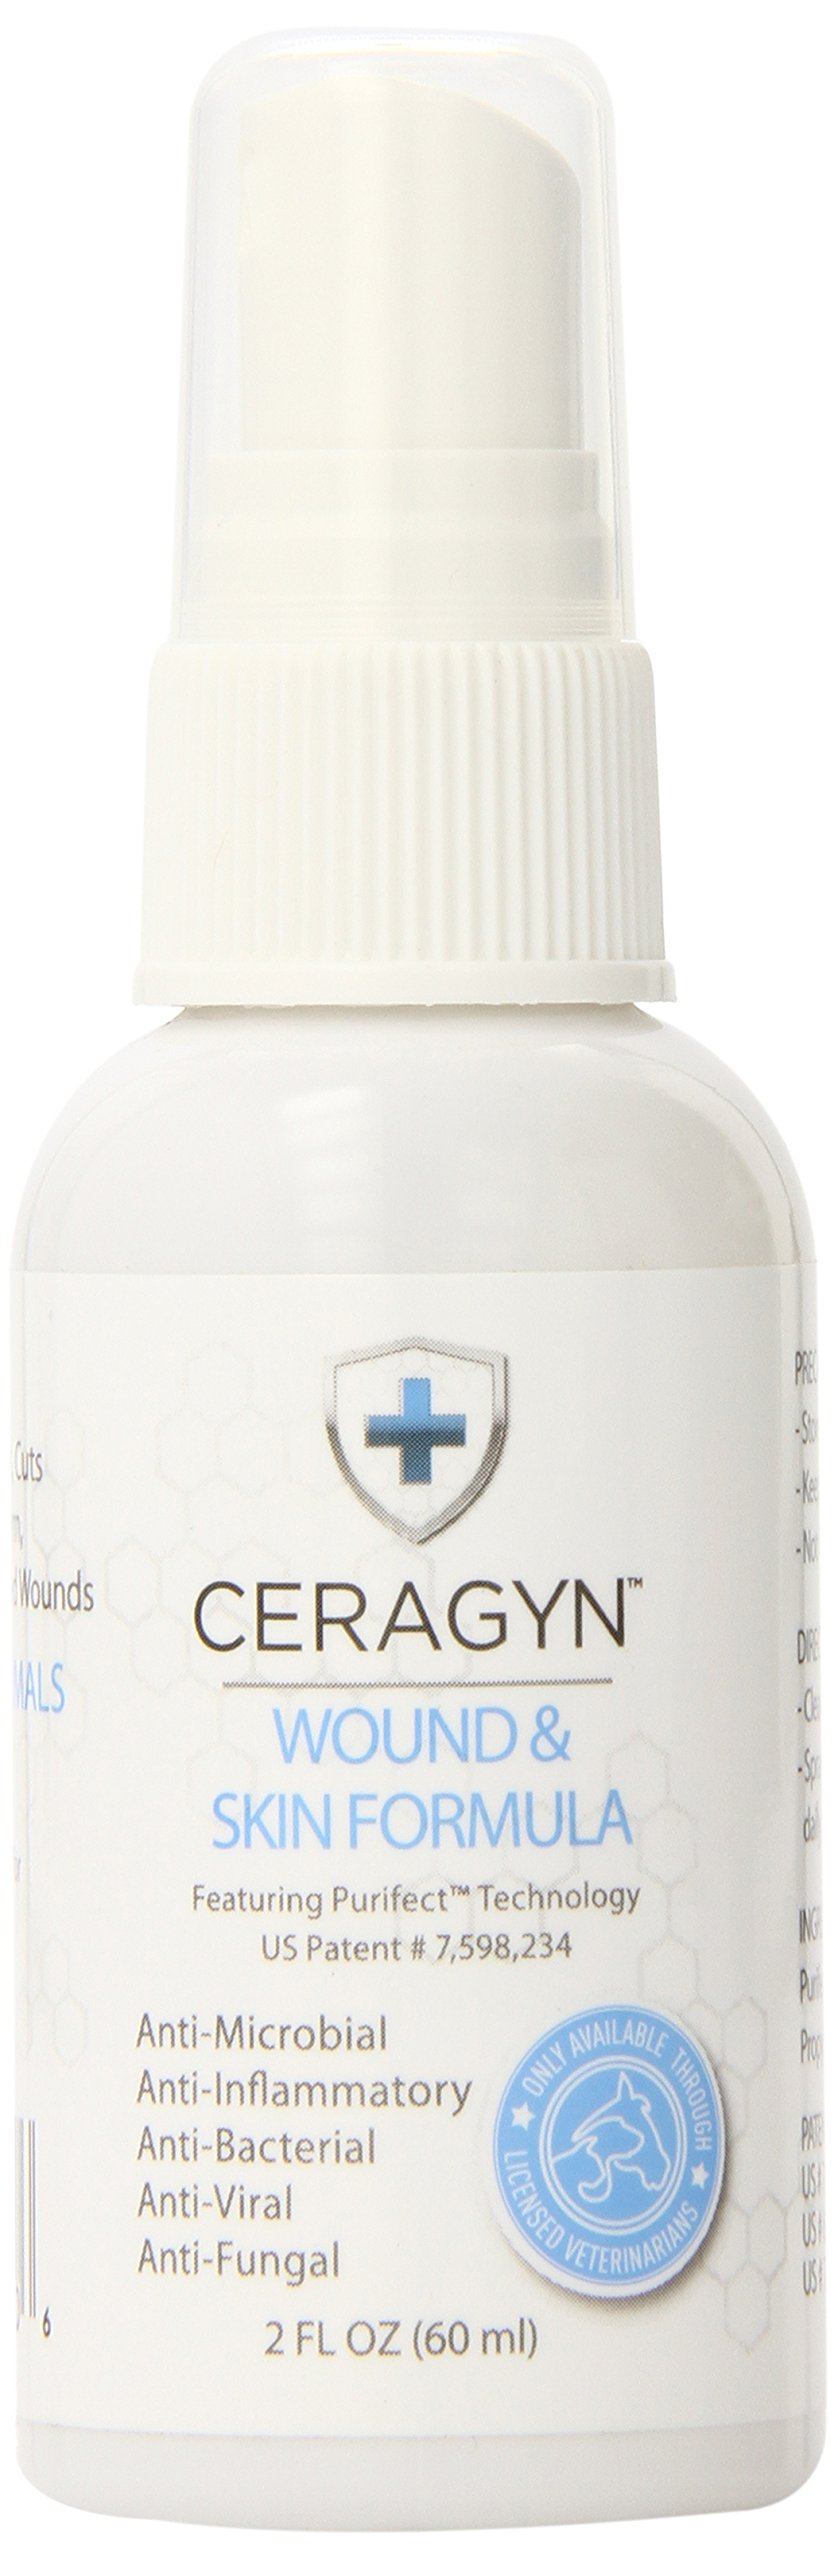 Ceragyn Wound and Skin Formula for Pets, 2-Ounce by Ceragyn